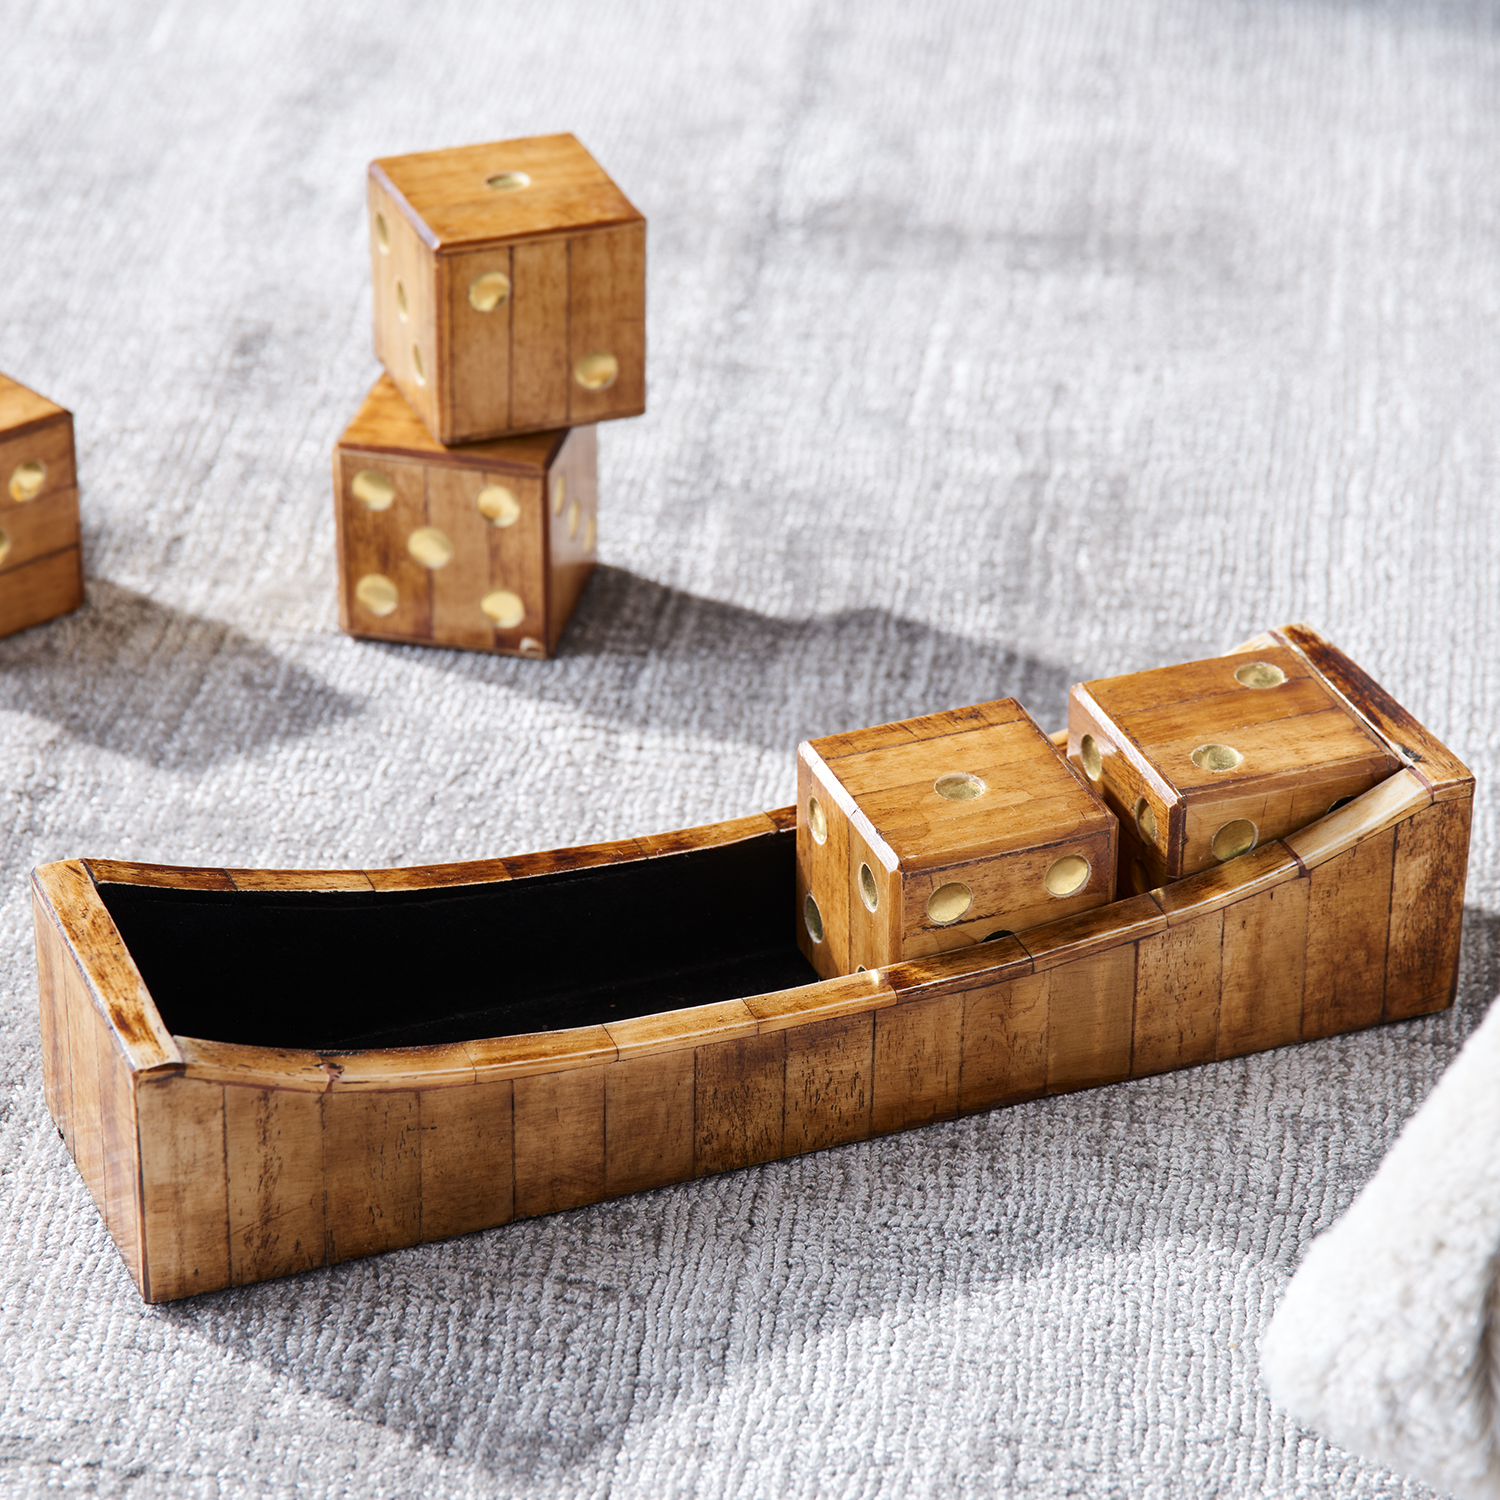 Tray with Wood & Bone Dice Set of 6